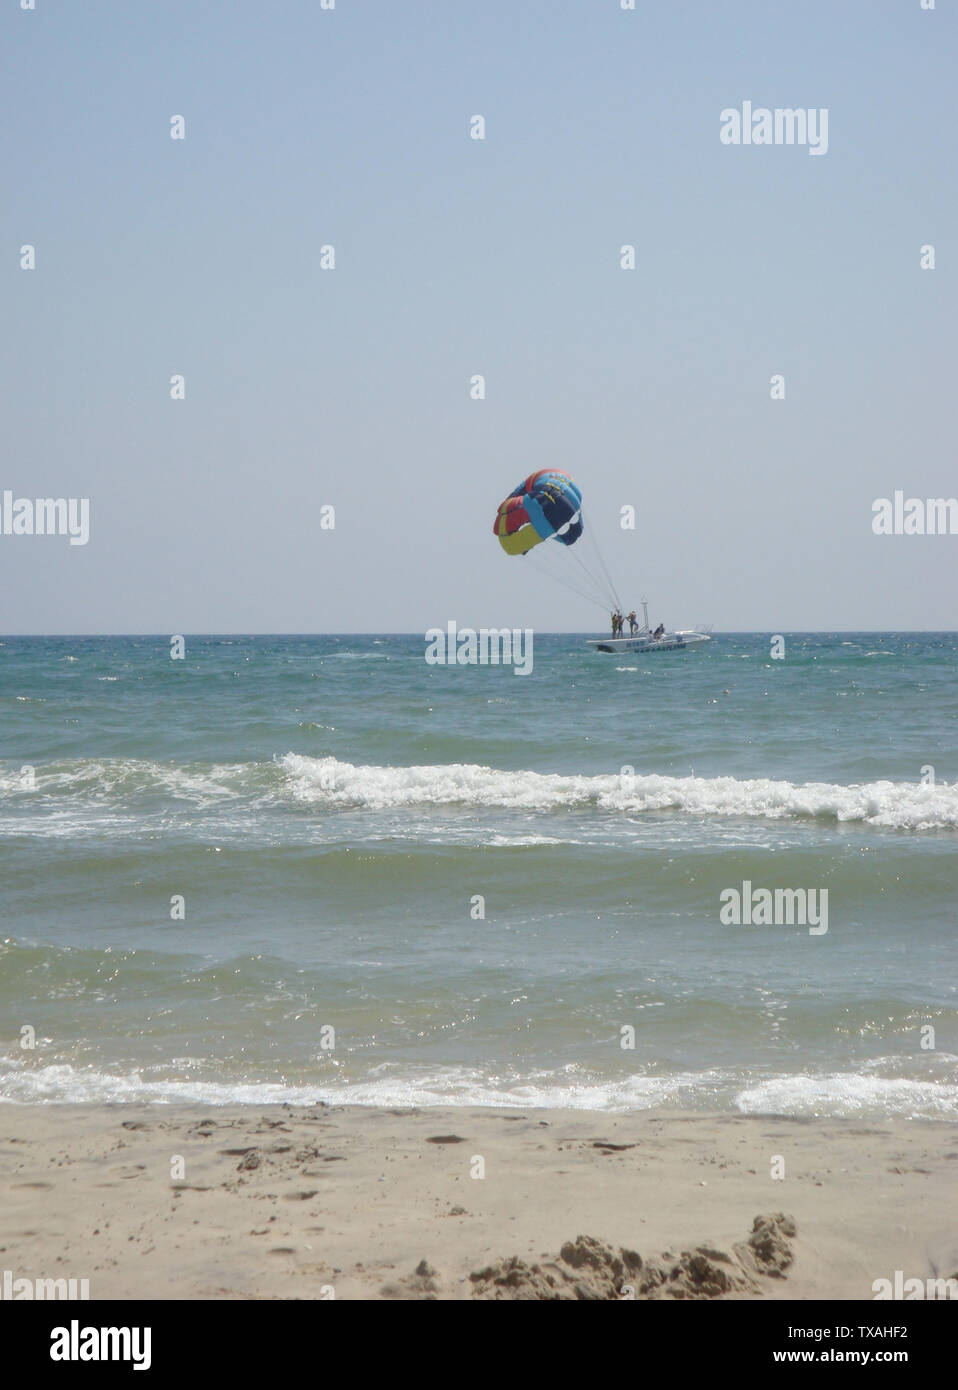 Parasailing over the sea. Flying a tandem paraglider over the sea with views of the horizon. Free time spent actively wonderful experiences vacation, - Stock Image